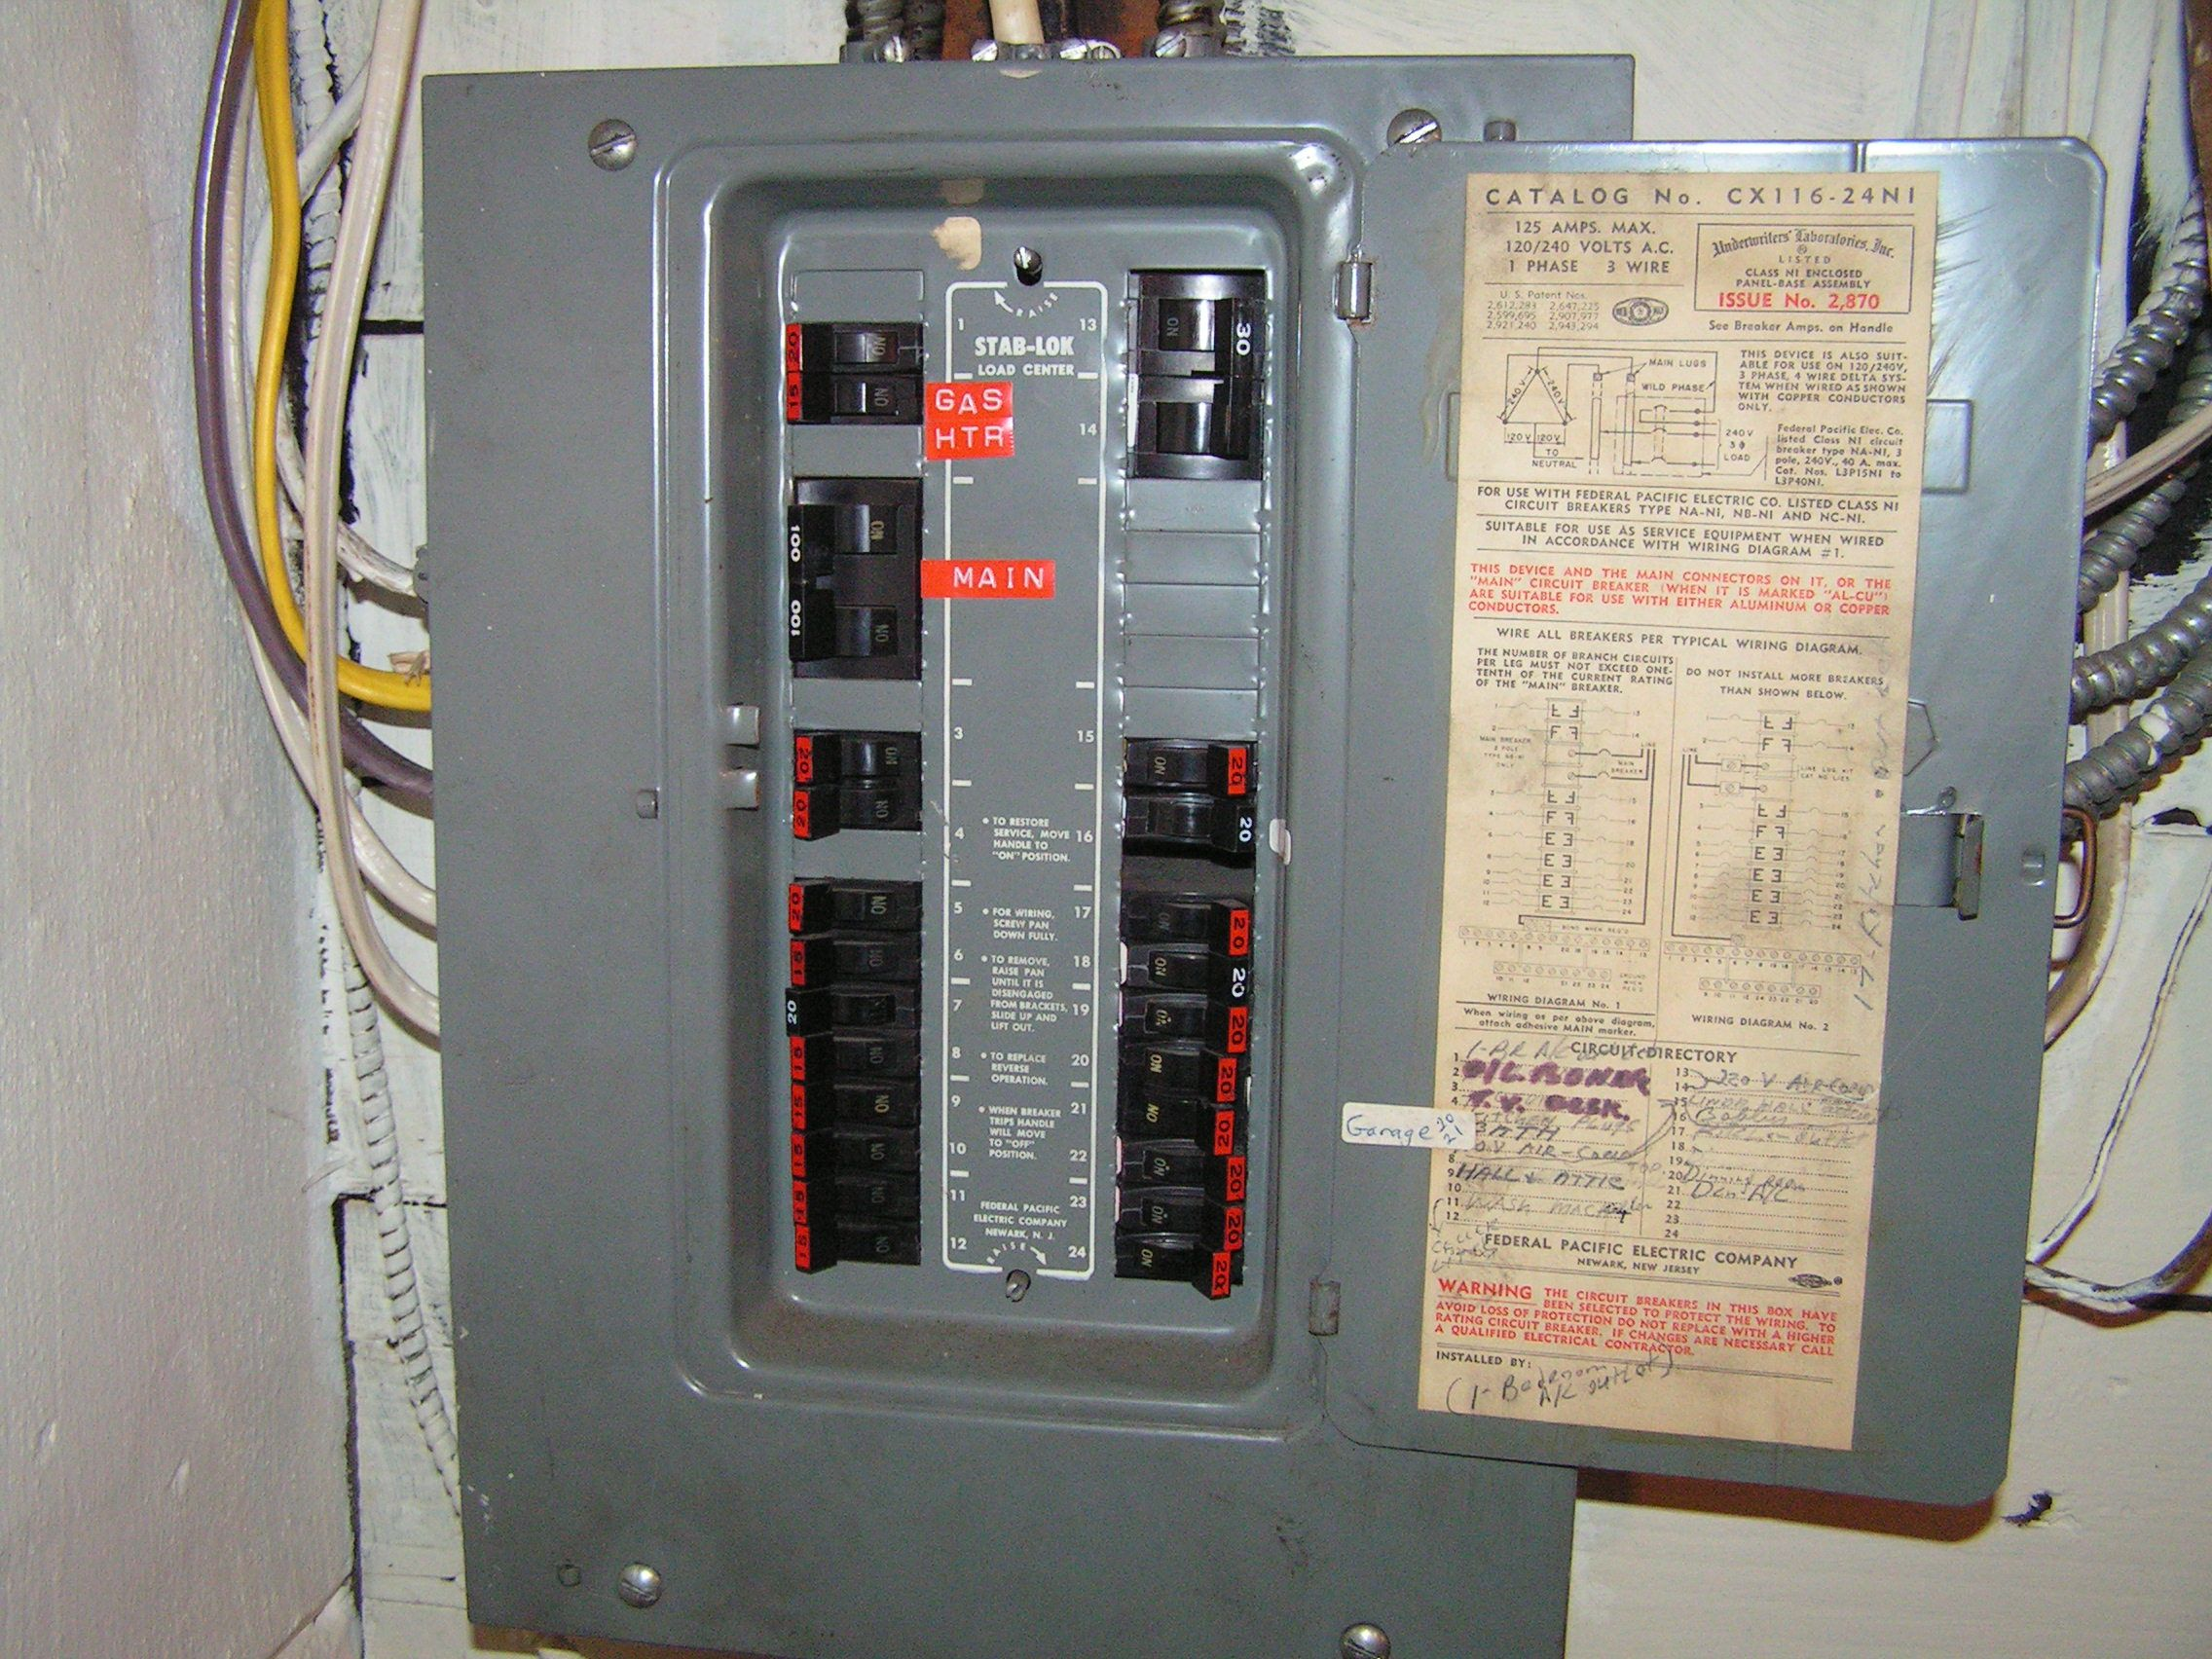 federal pacific fuse box wiring diagrams bibthe federal pacific electric panel is a known fire hazard the federal pacific electric fuse box federal  [ 2272 x 1704 Pixel ]